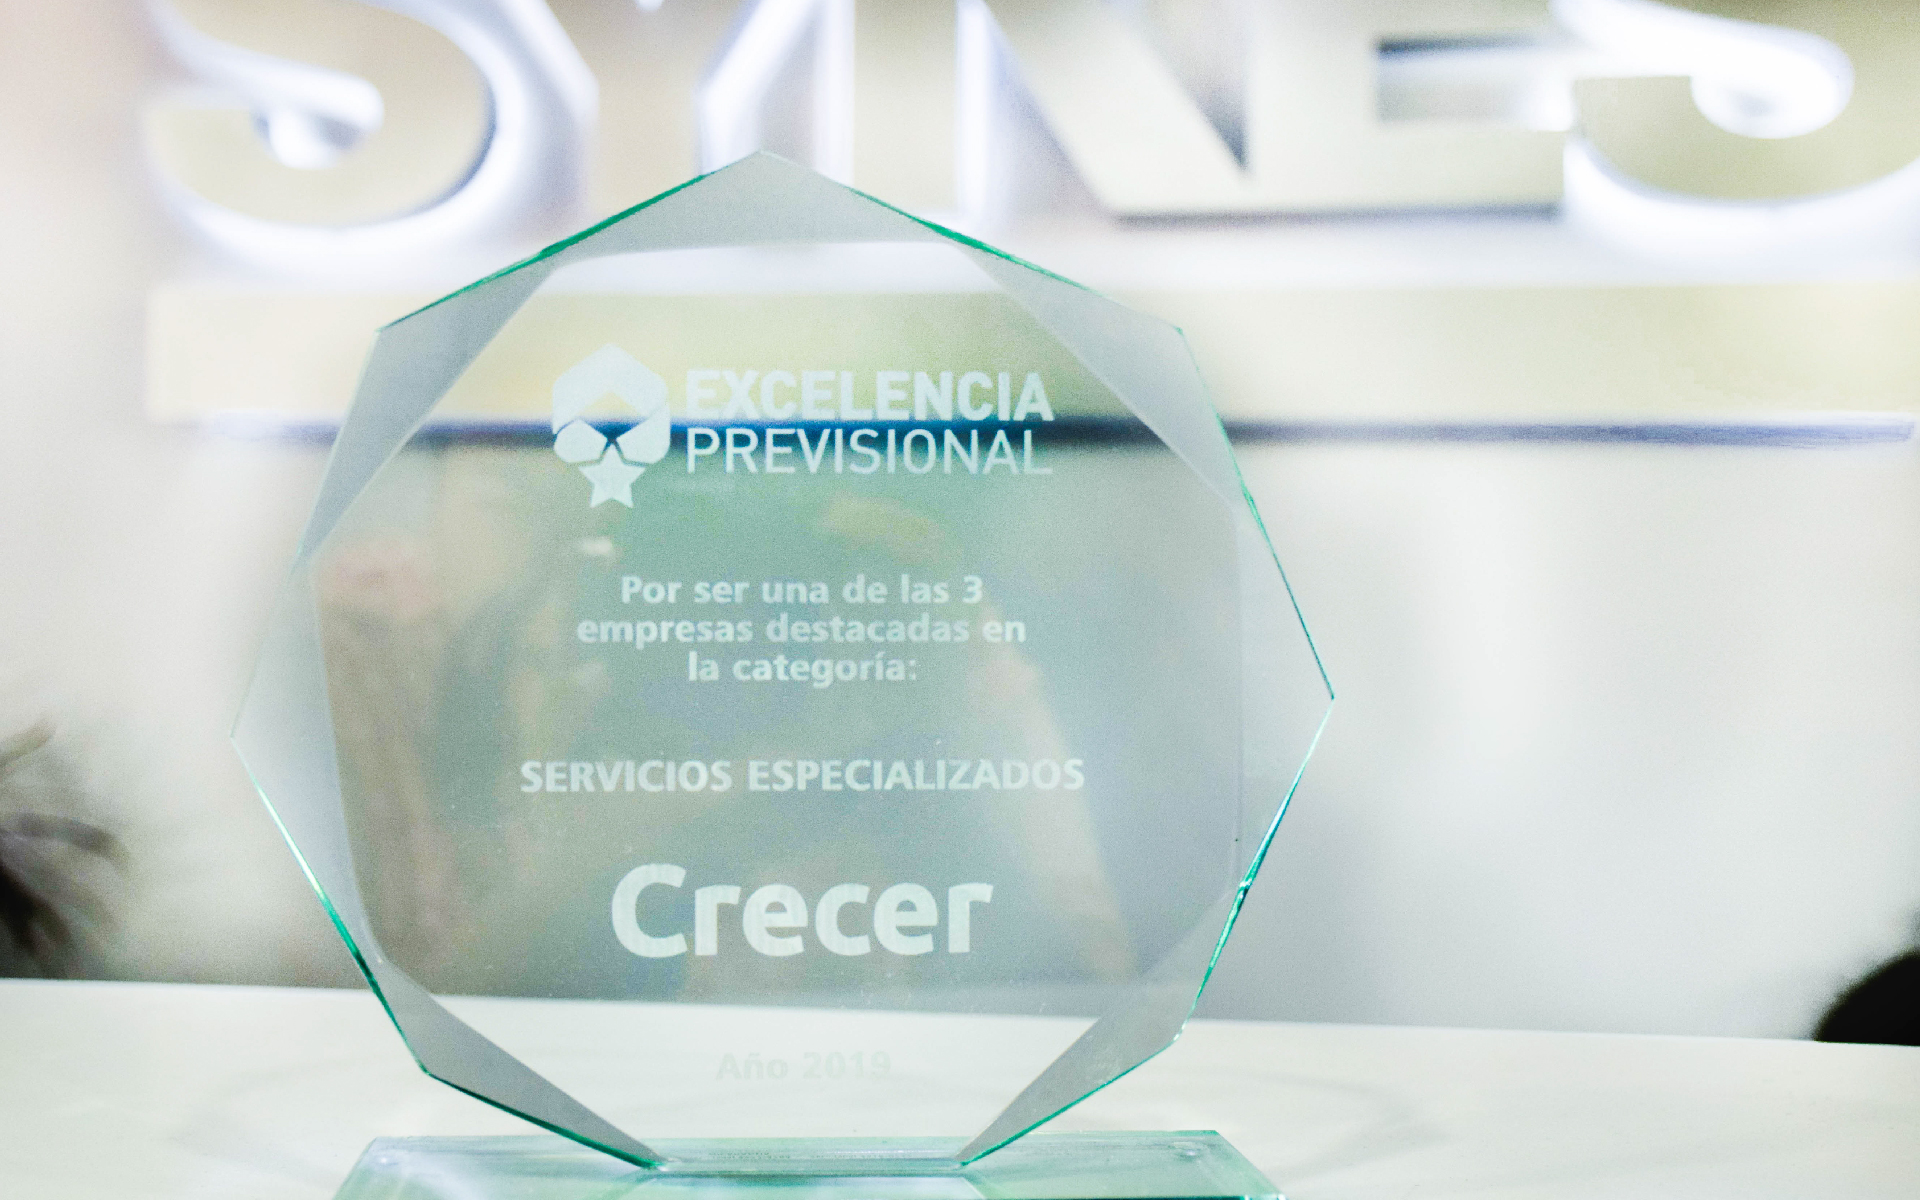 SYKES El Salvador Wins the Pension Excellence Award